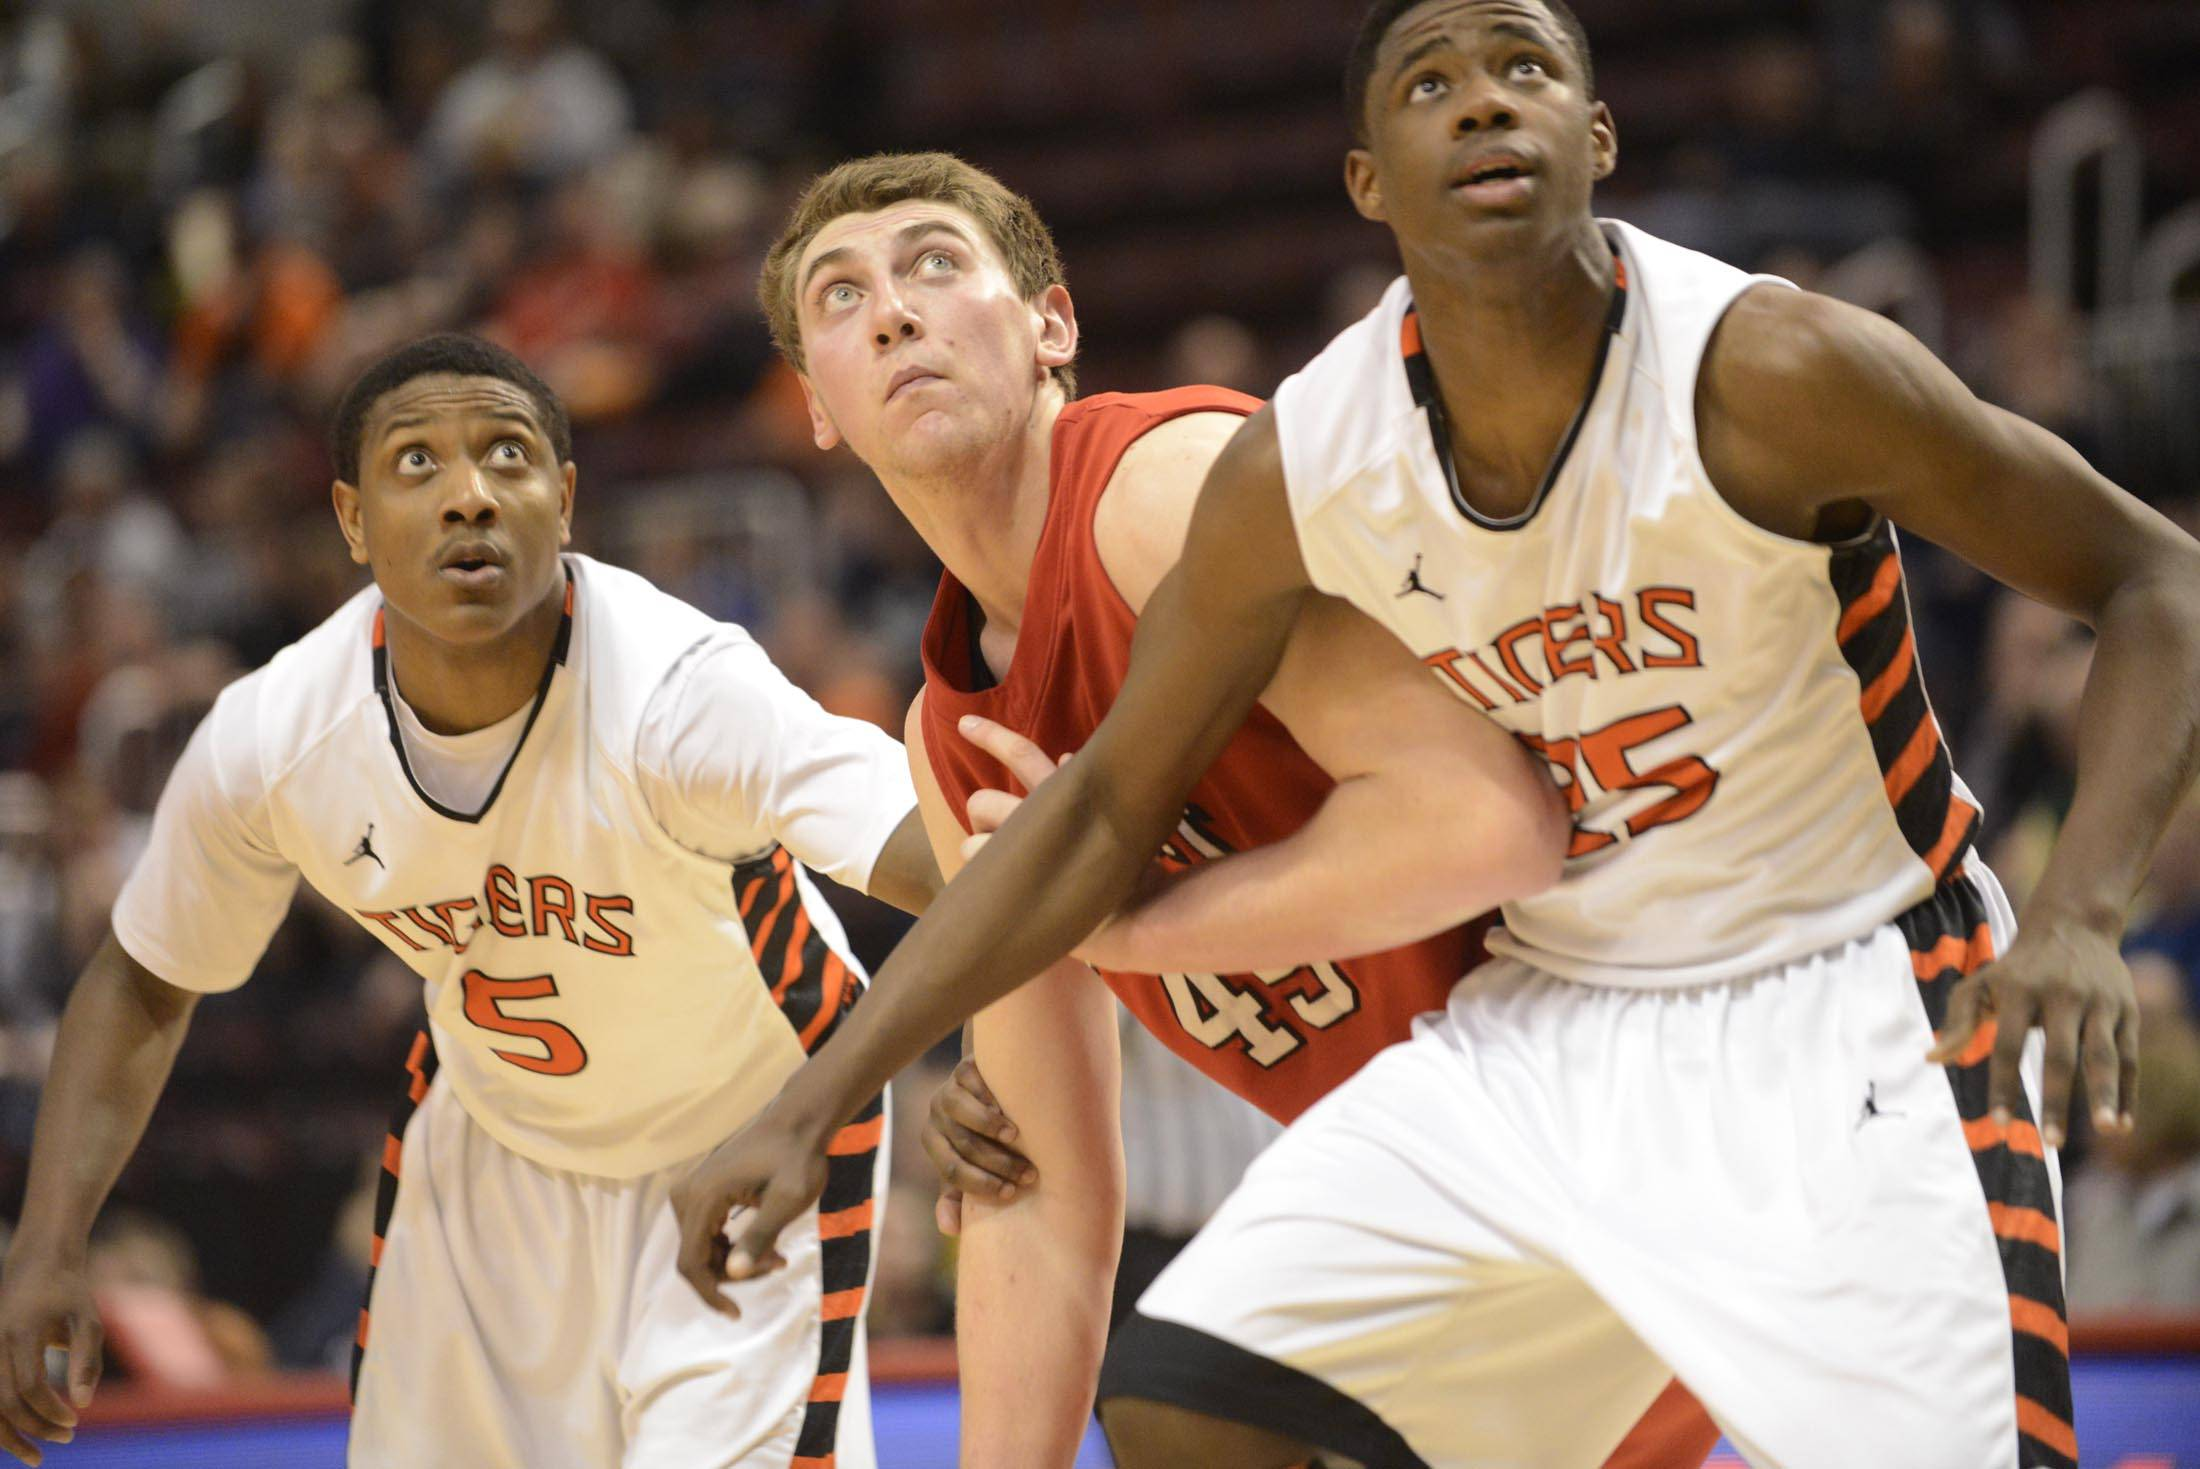 Images: Benet Academy vs. Edwardsville 4A State Semifinal Boys Basketball